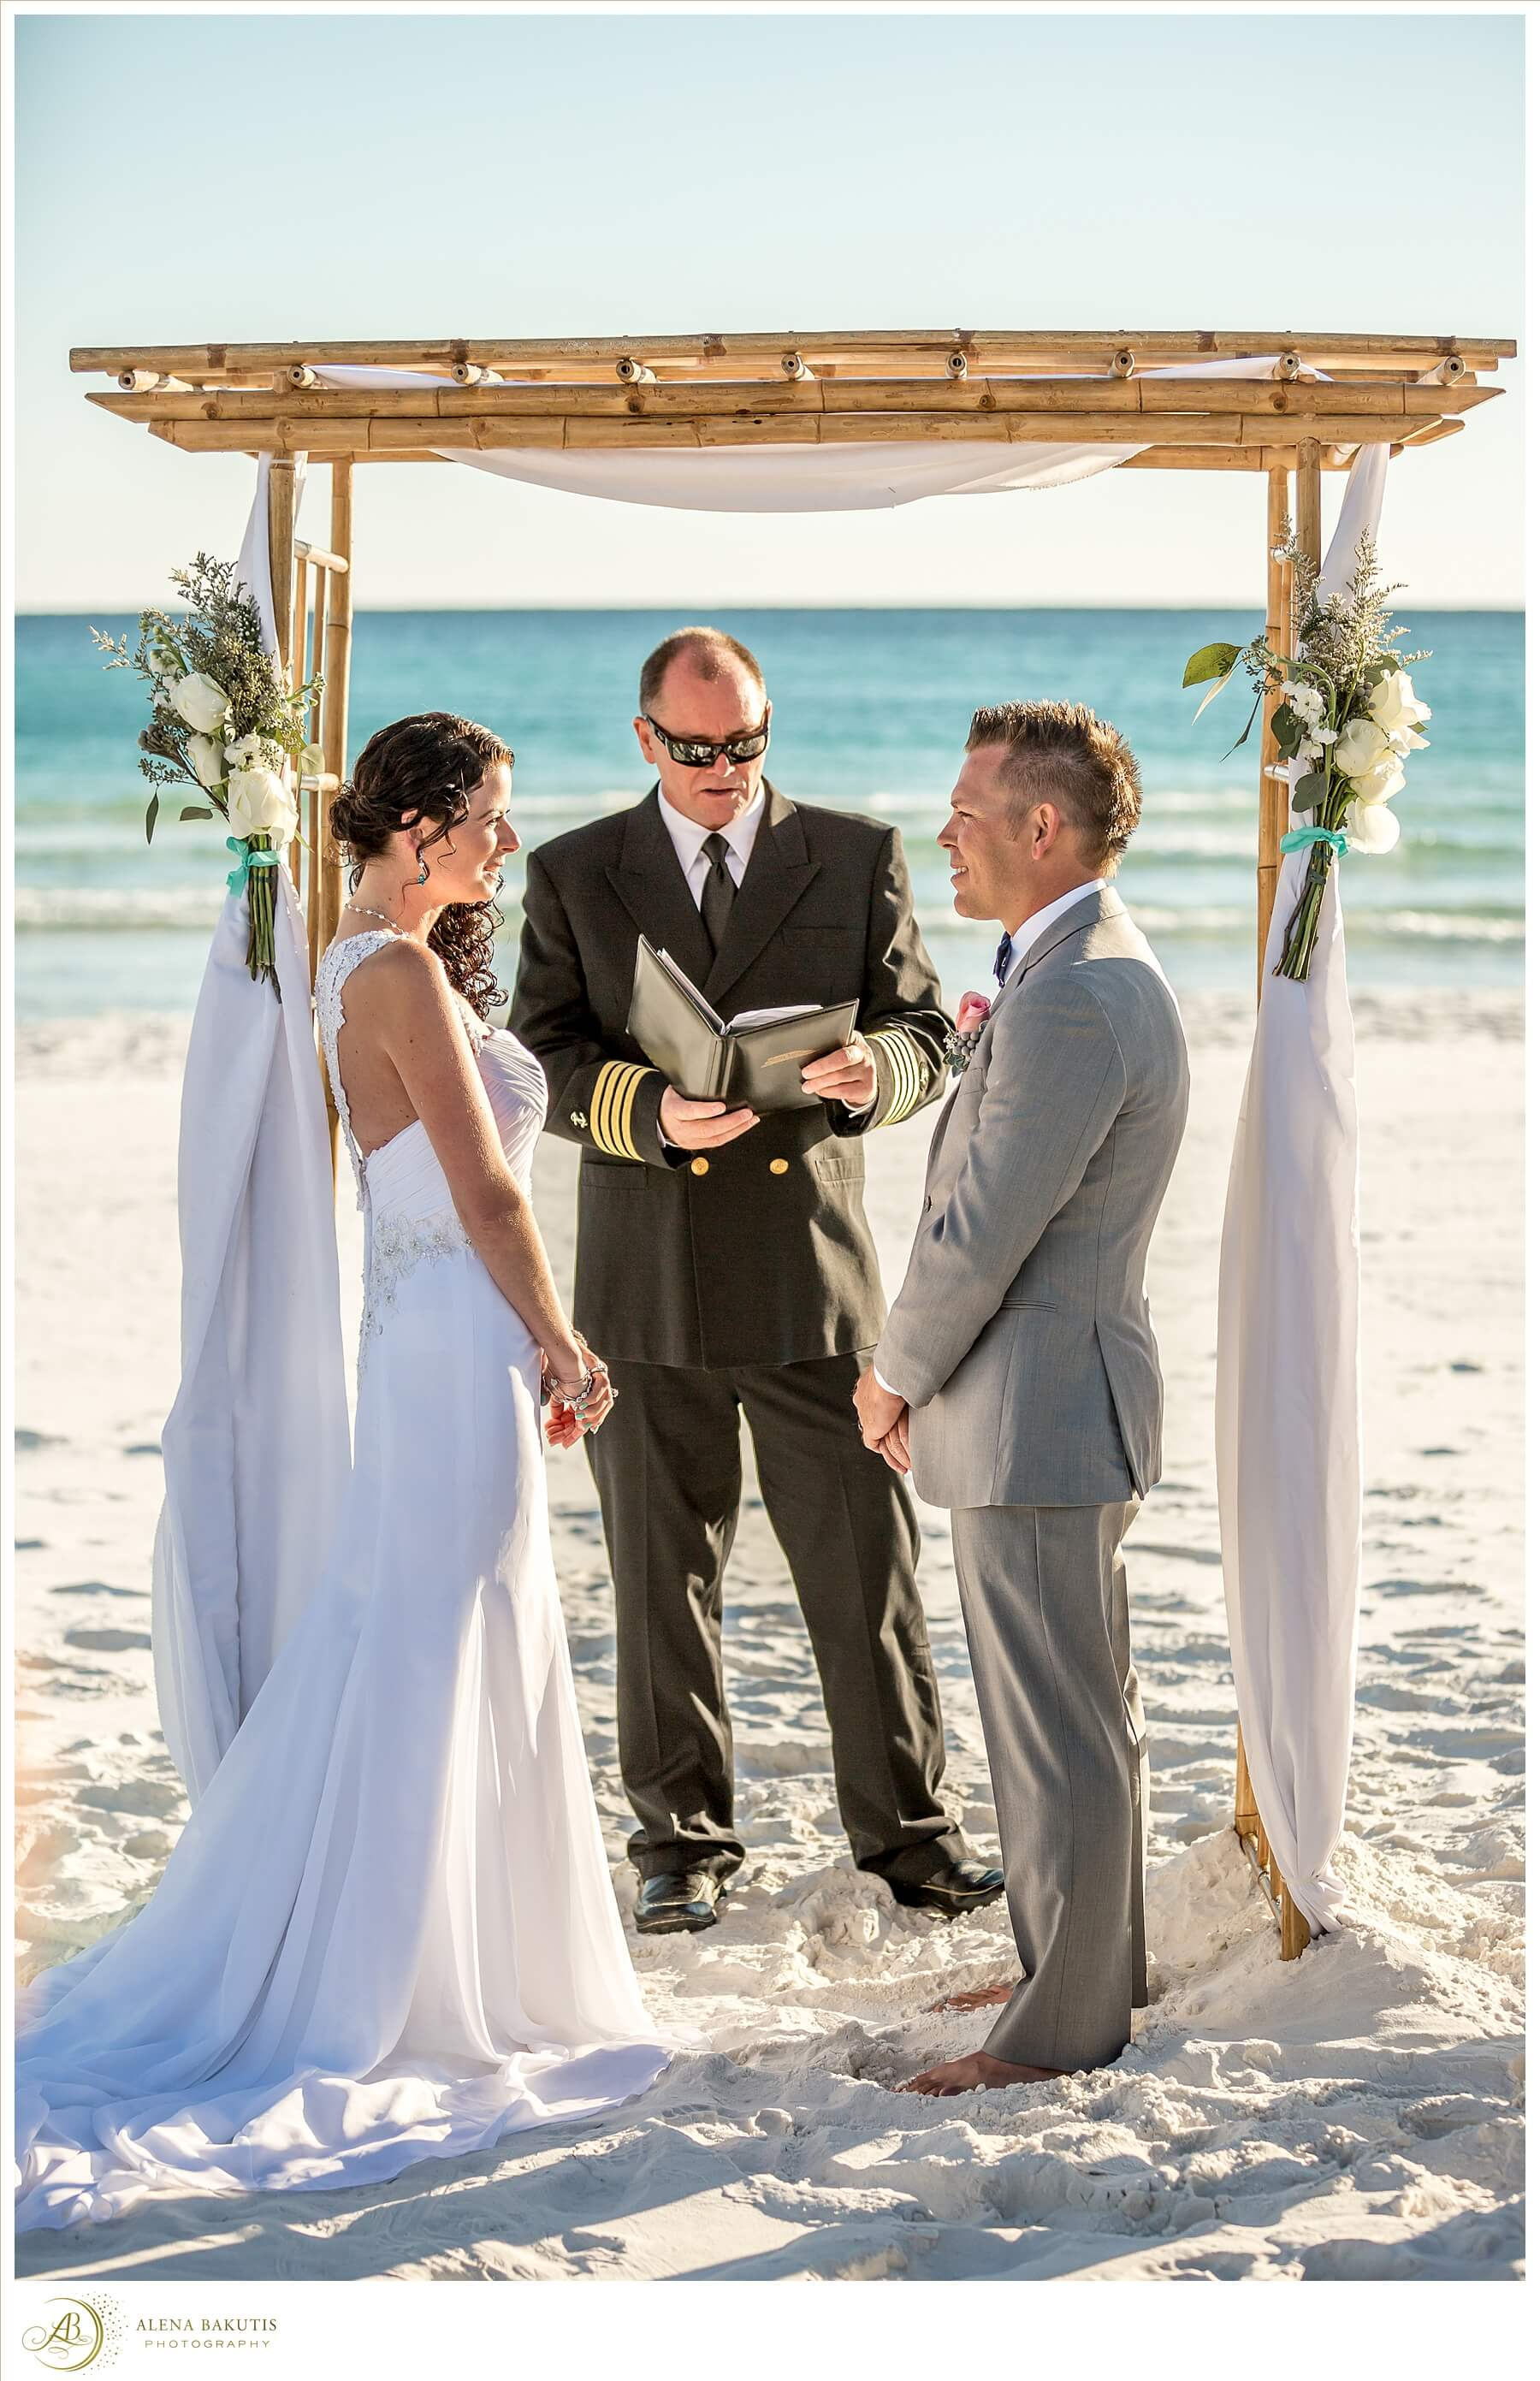 destin beach weddings Alena Bakutis Photography - Amber Brandon-418_WEB